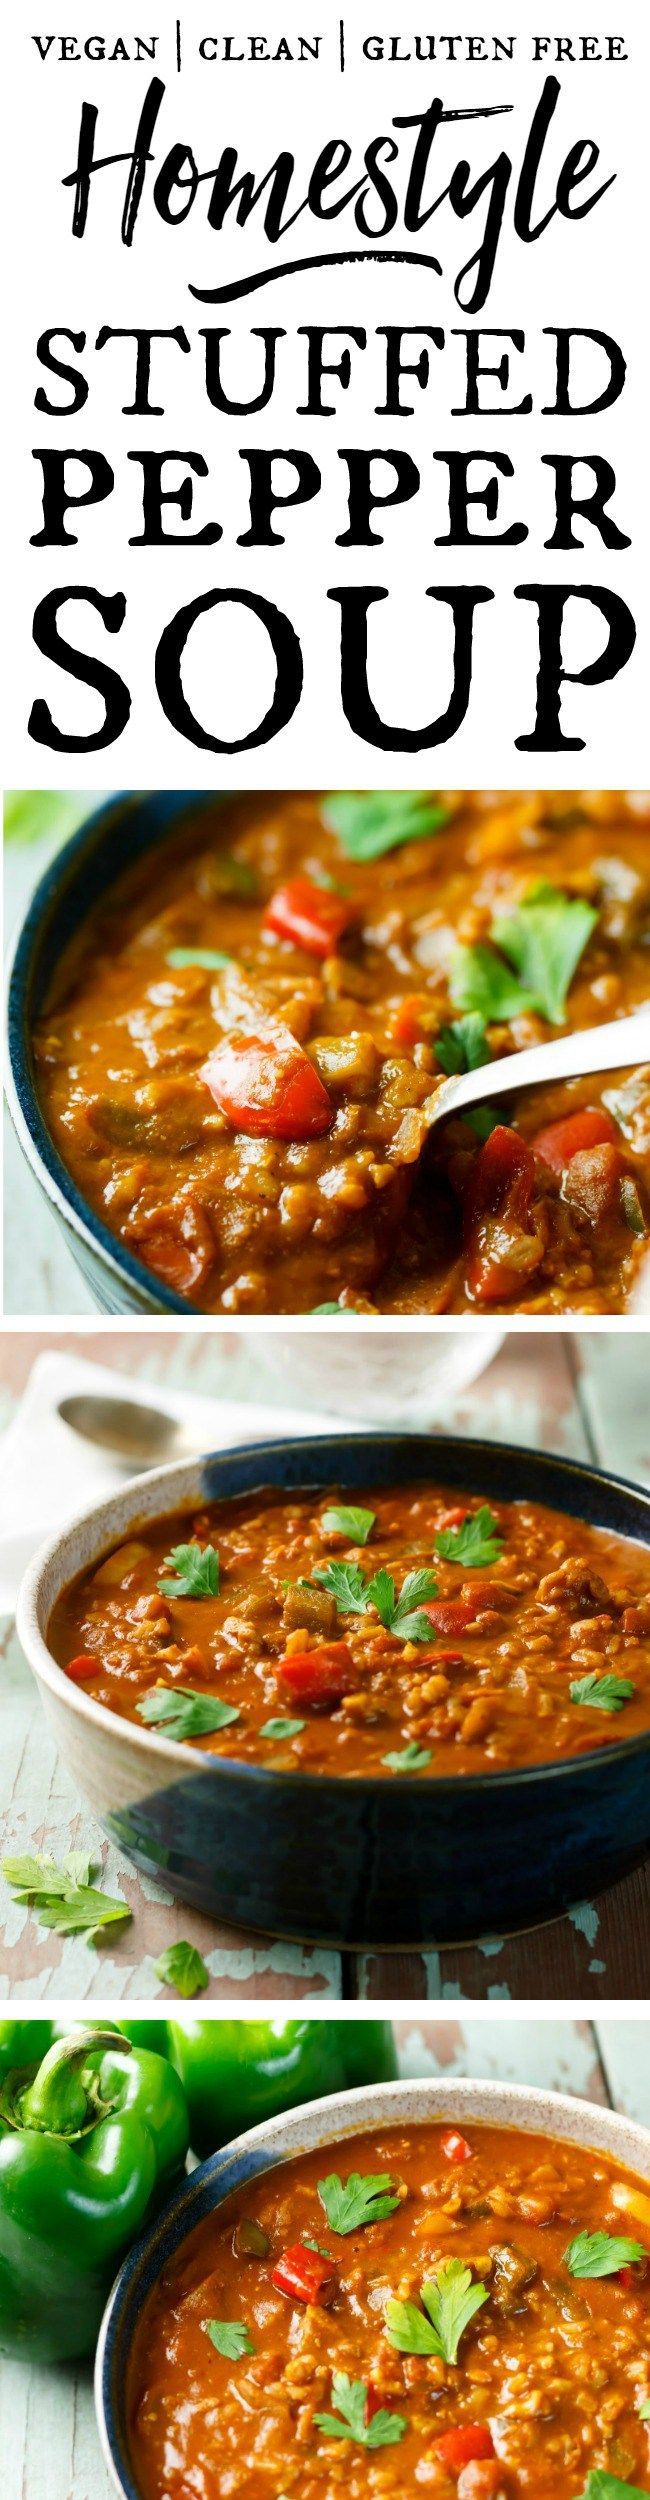 Homestyle Stuffed Pepper Soup - Take the chill off with a big bowl of this amazing stuffed pepper soup. It's easy to make and packed with healthy goodness! Vegan, gluten free, clean ingredients.